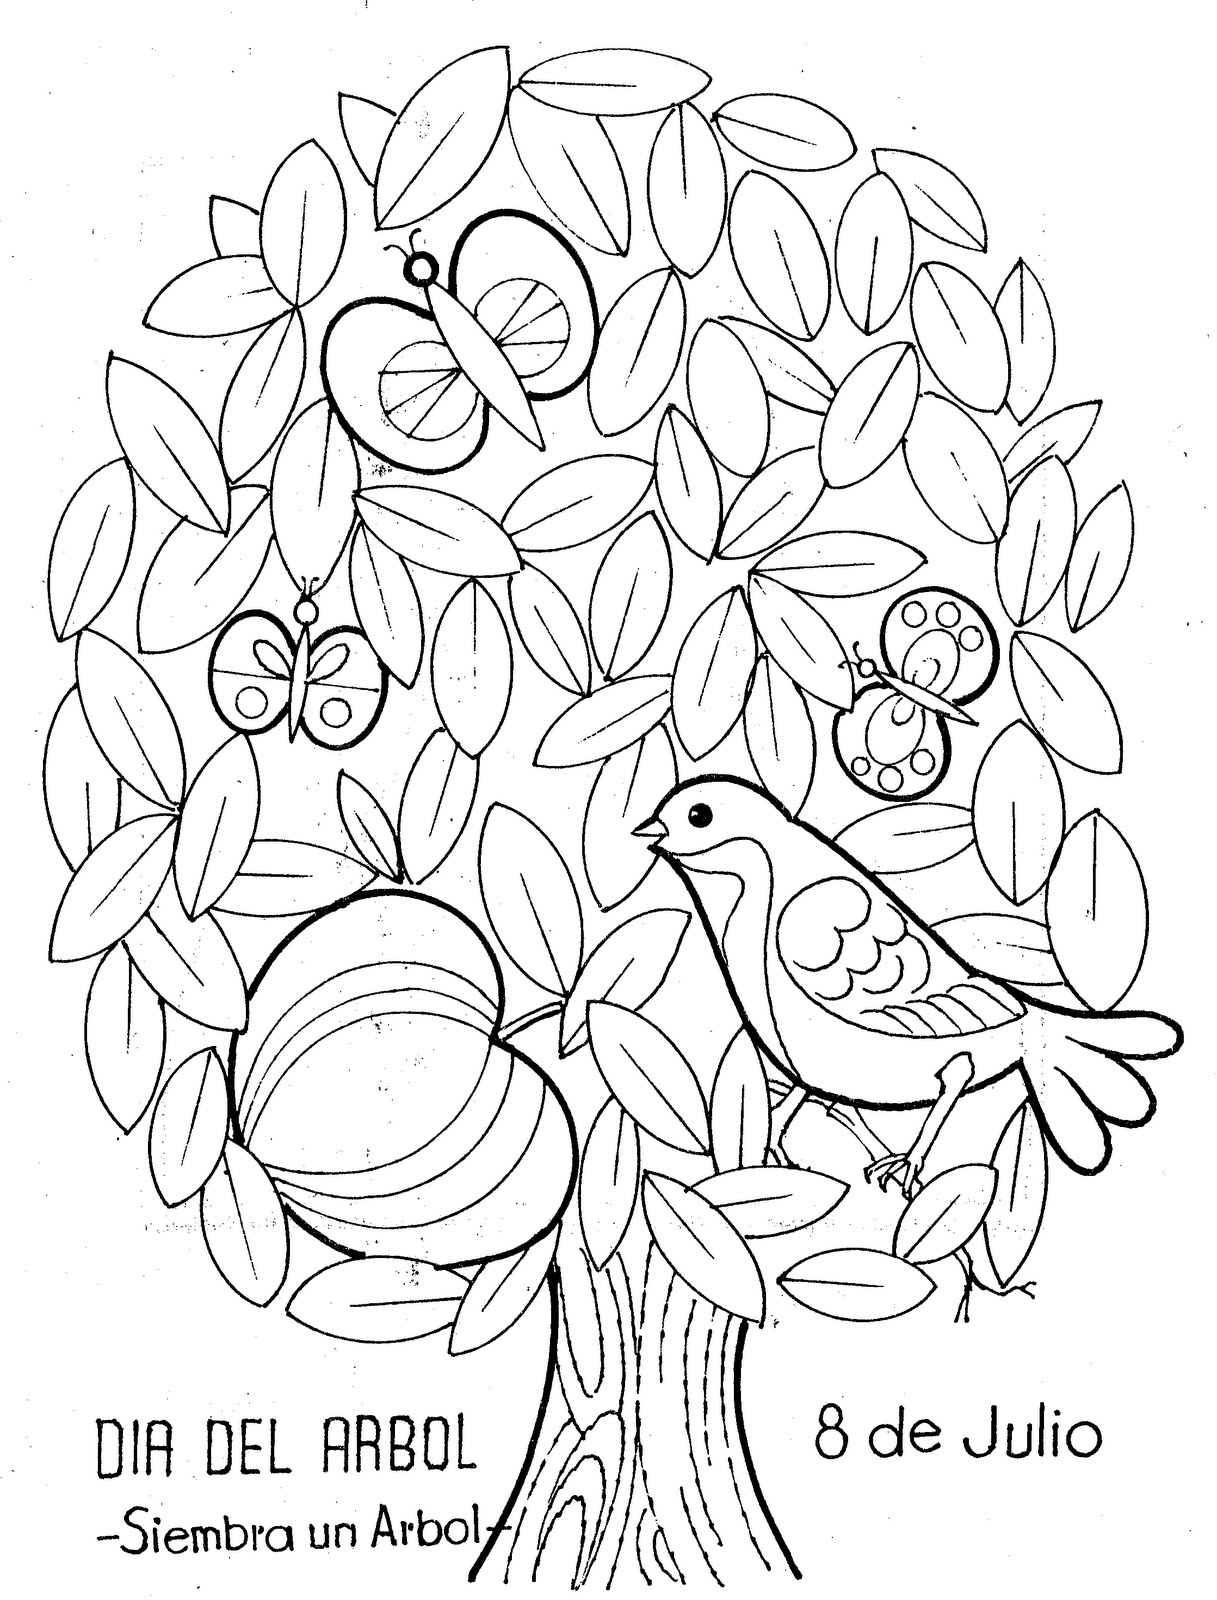 Tree day free coloring pages coloring pages for Dia del arbol 01 de septiembre